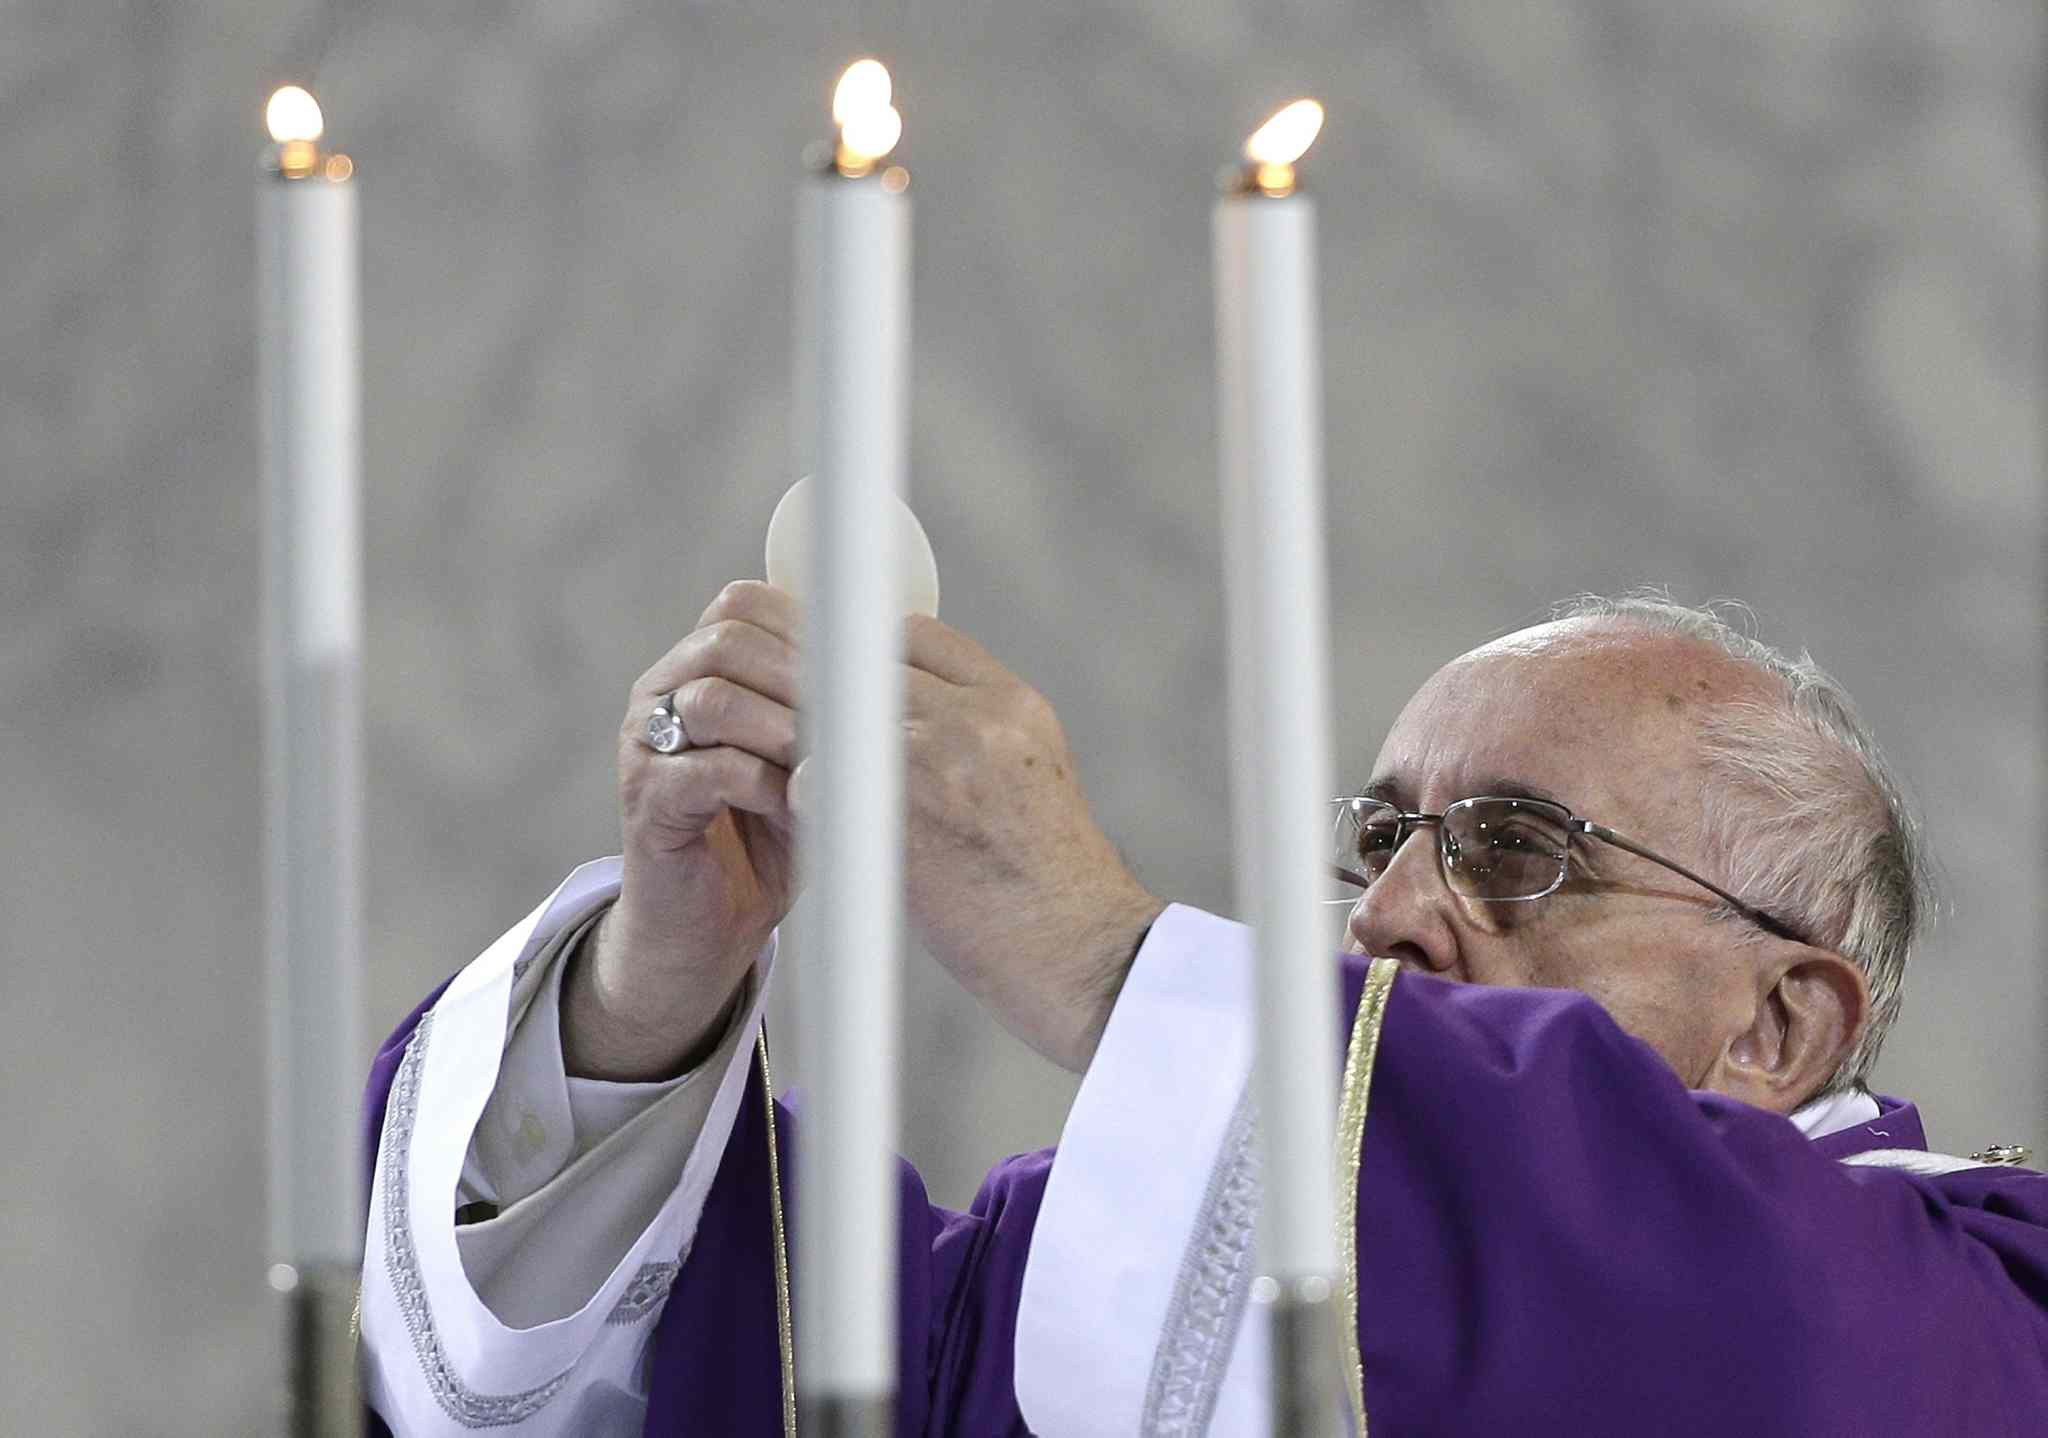 Pope Francis revealed his willingness in an interview to re-examine cultural flash points.